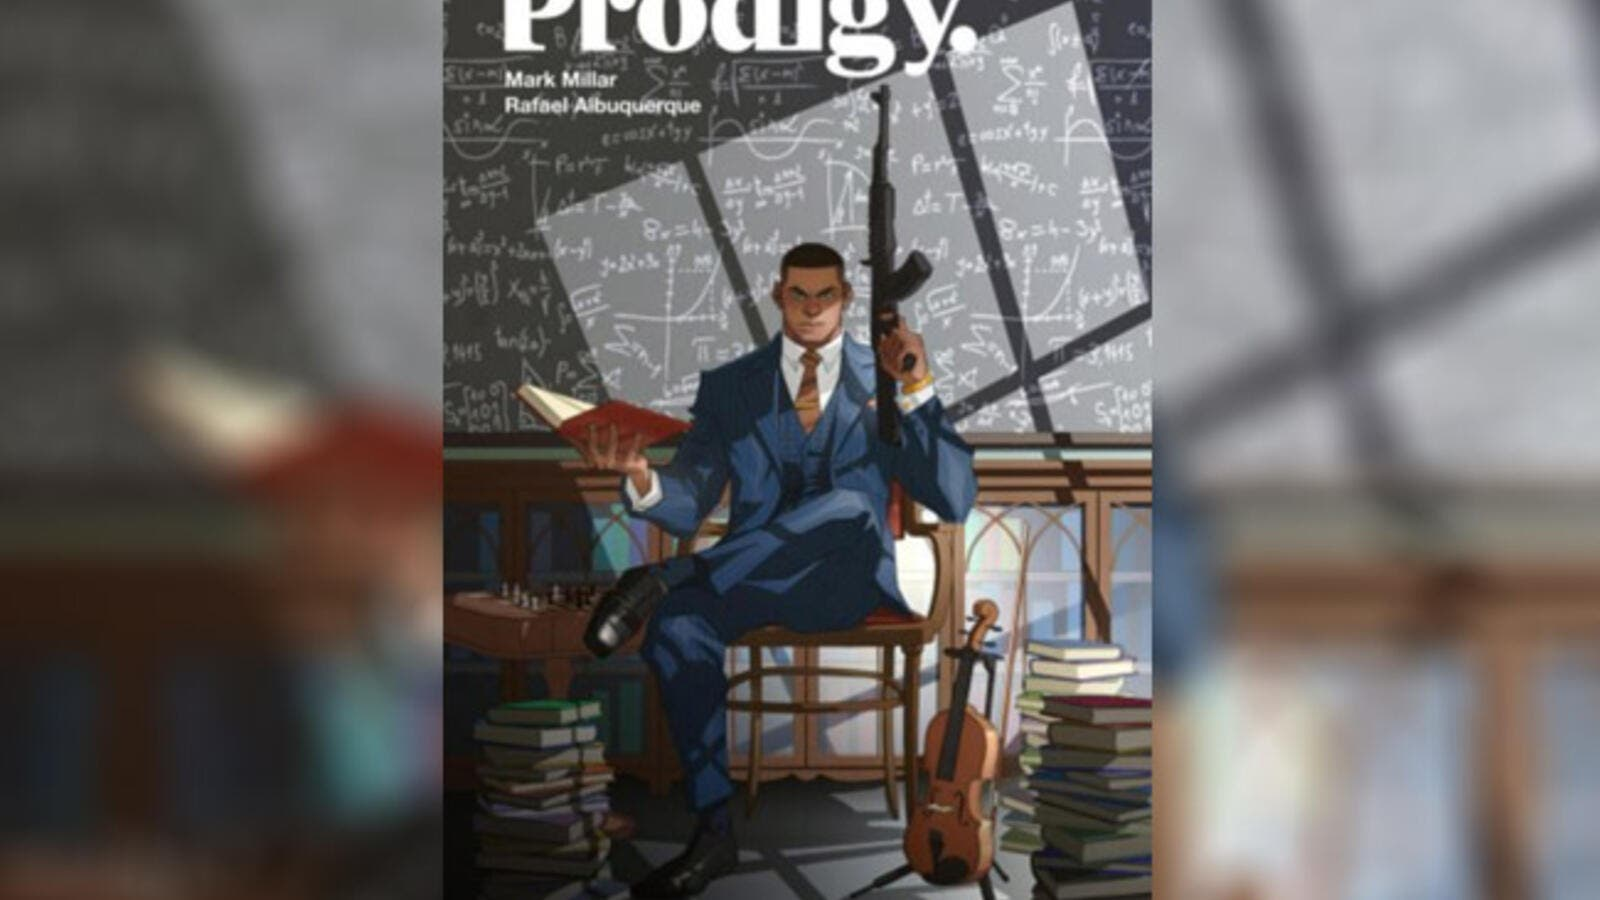 Prodigy will arrive in comic book stores Dec. 5 (Source: Hollywood Reporter / twitter )